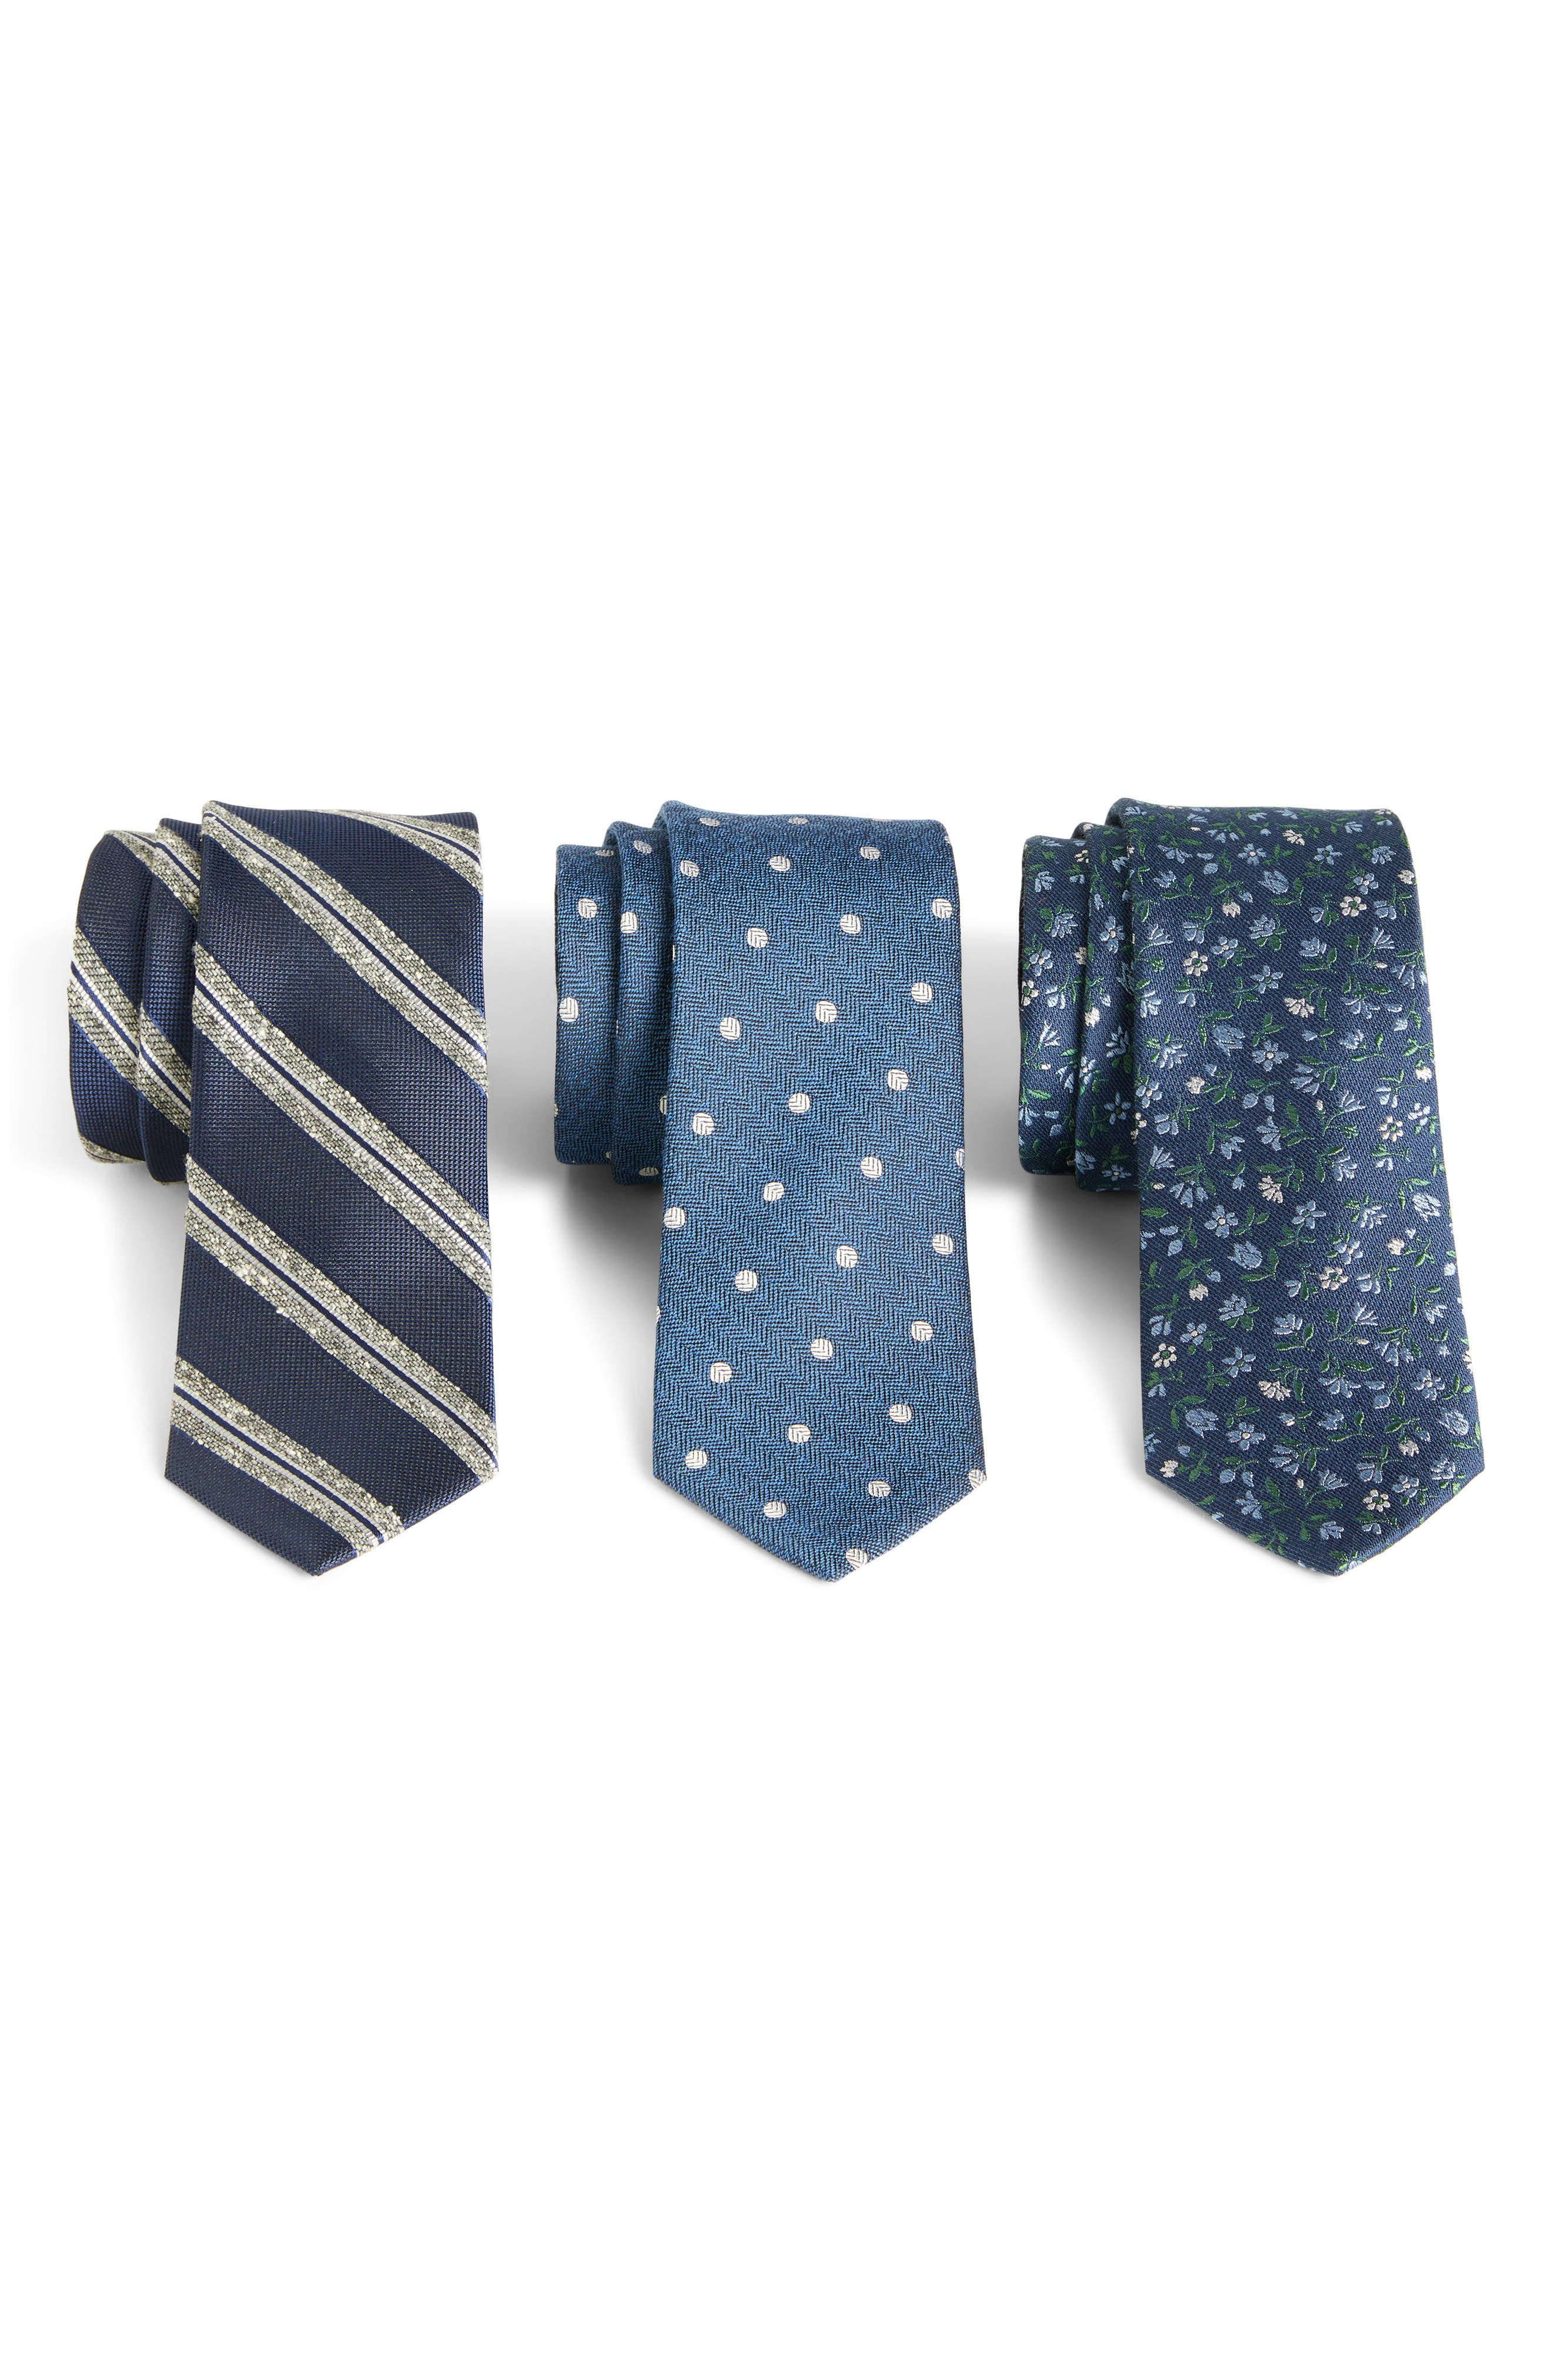 3-Pack Navy Tie Gift Set, Main, color, NAVY